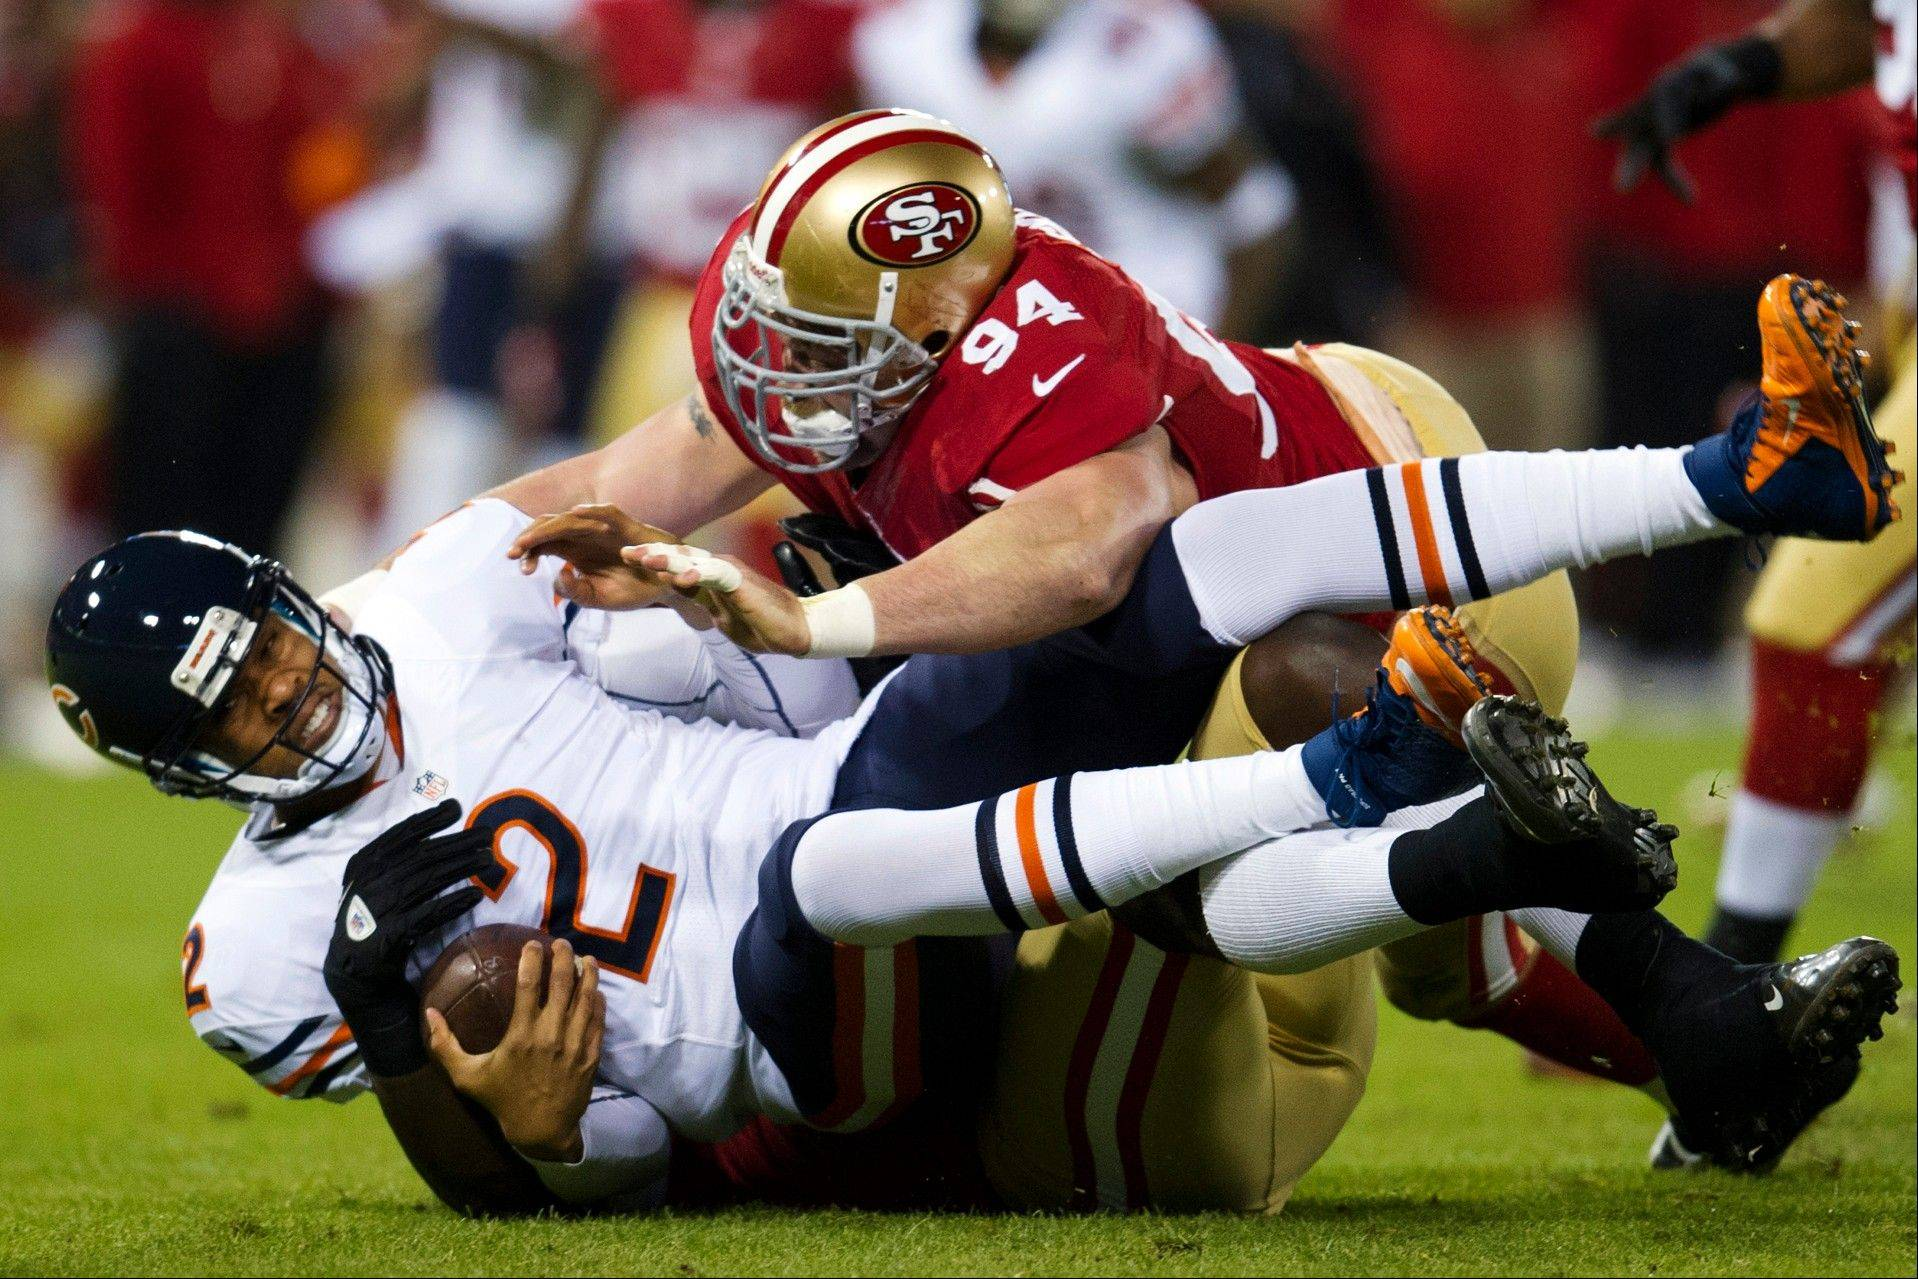 San Francisco 49ers outside linebacker Aldon Smith, obscured, and defensive end Justin Smith sack Chicago Bears quarterback Jason Campbell during the first quarter.